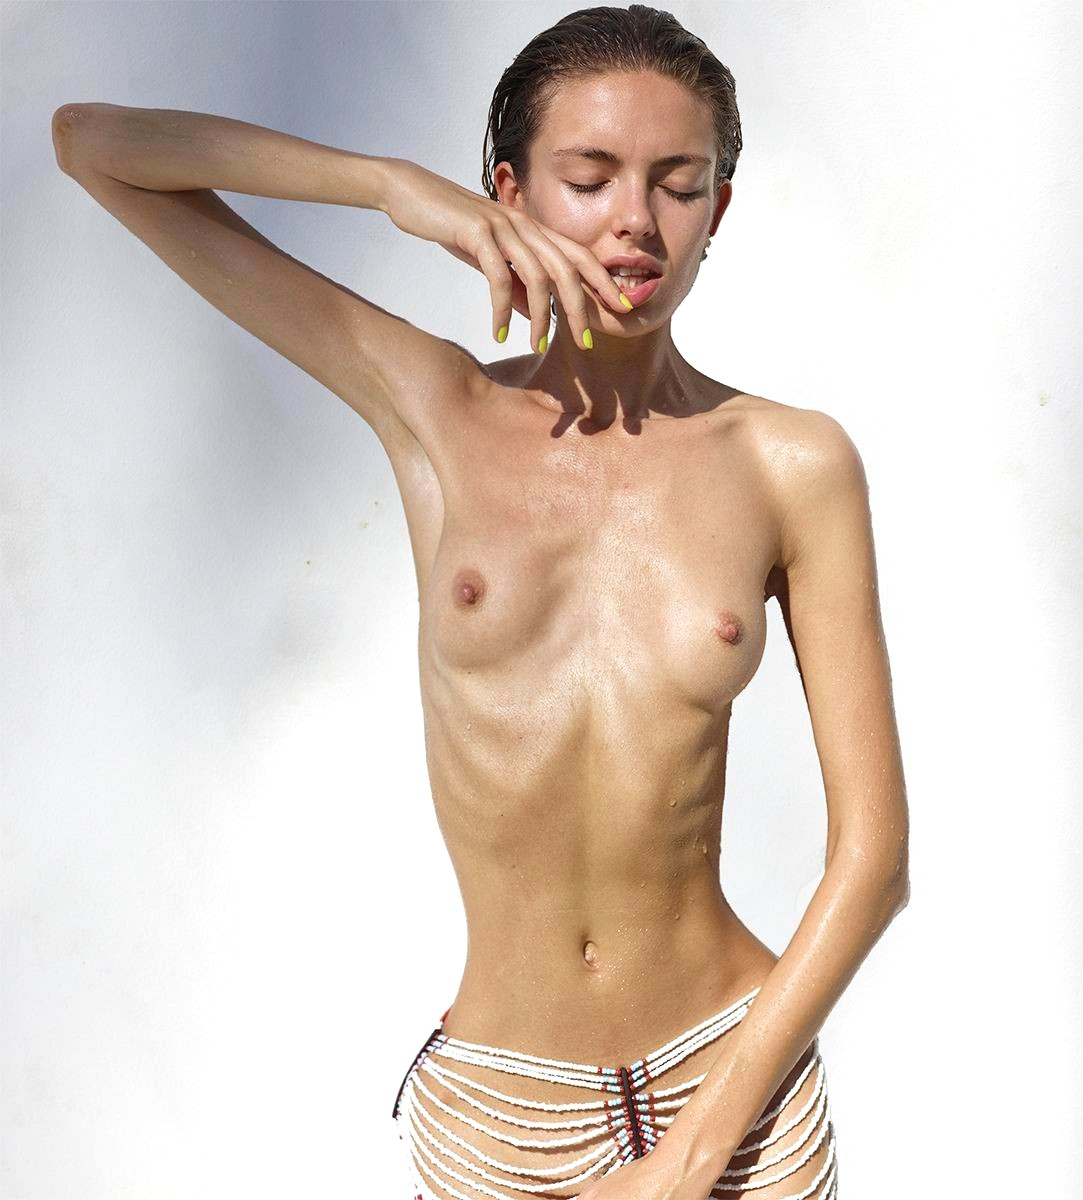 Beautiful anorexic girl posing nude